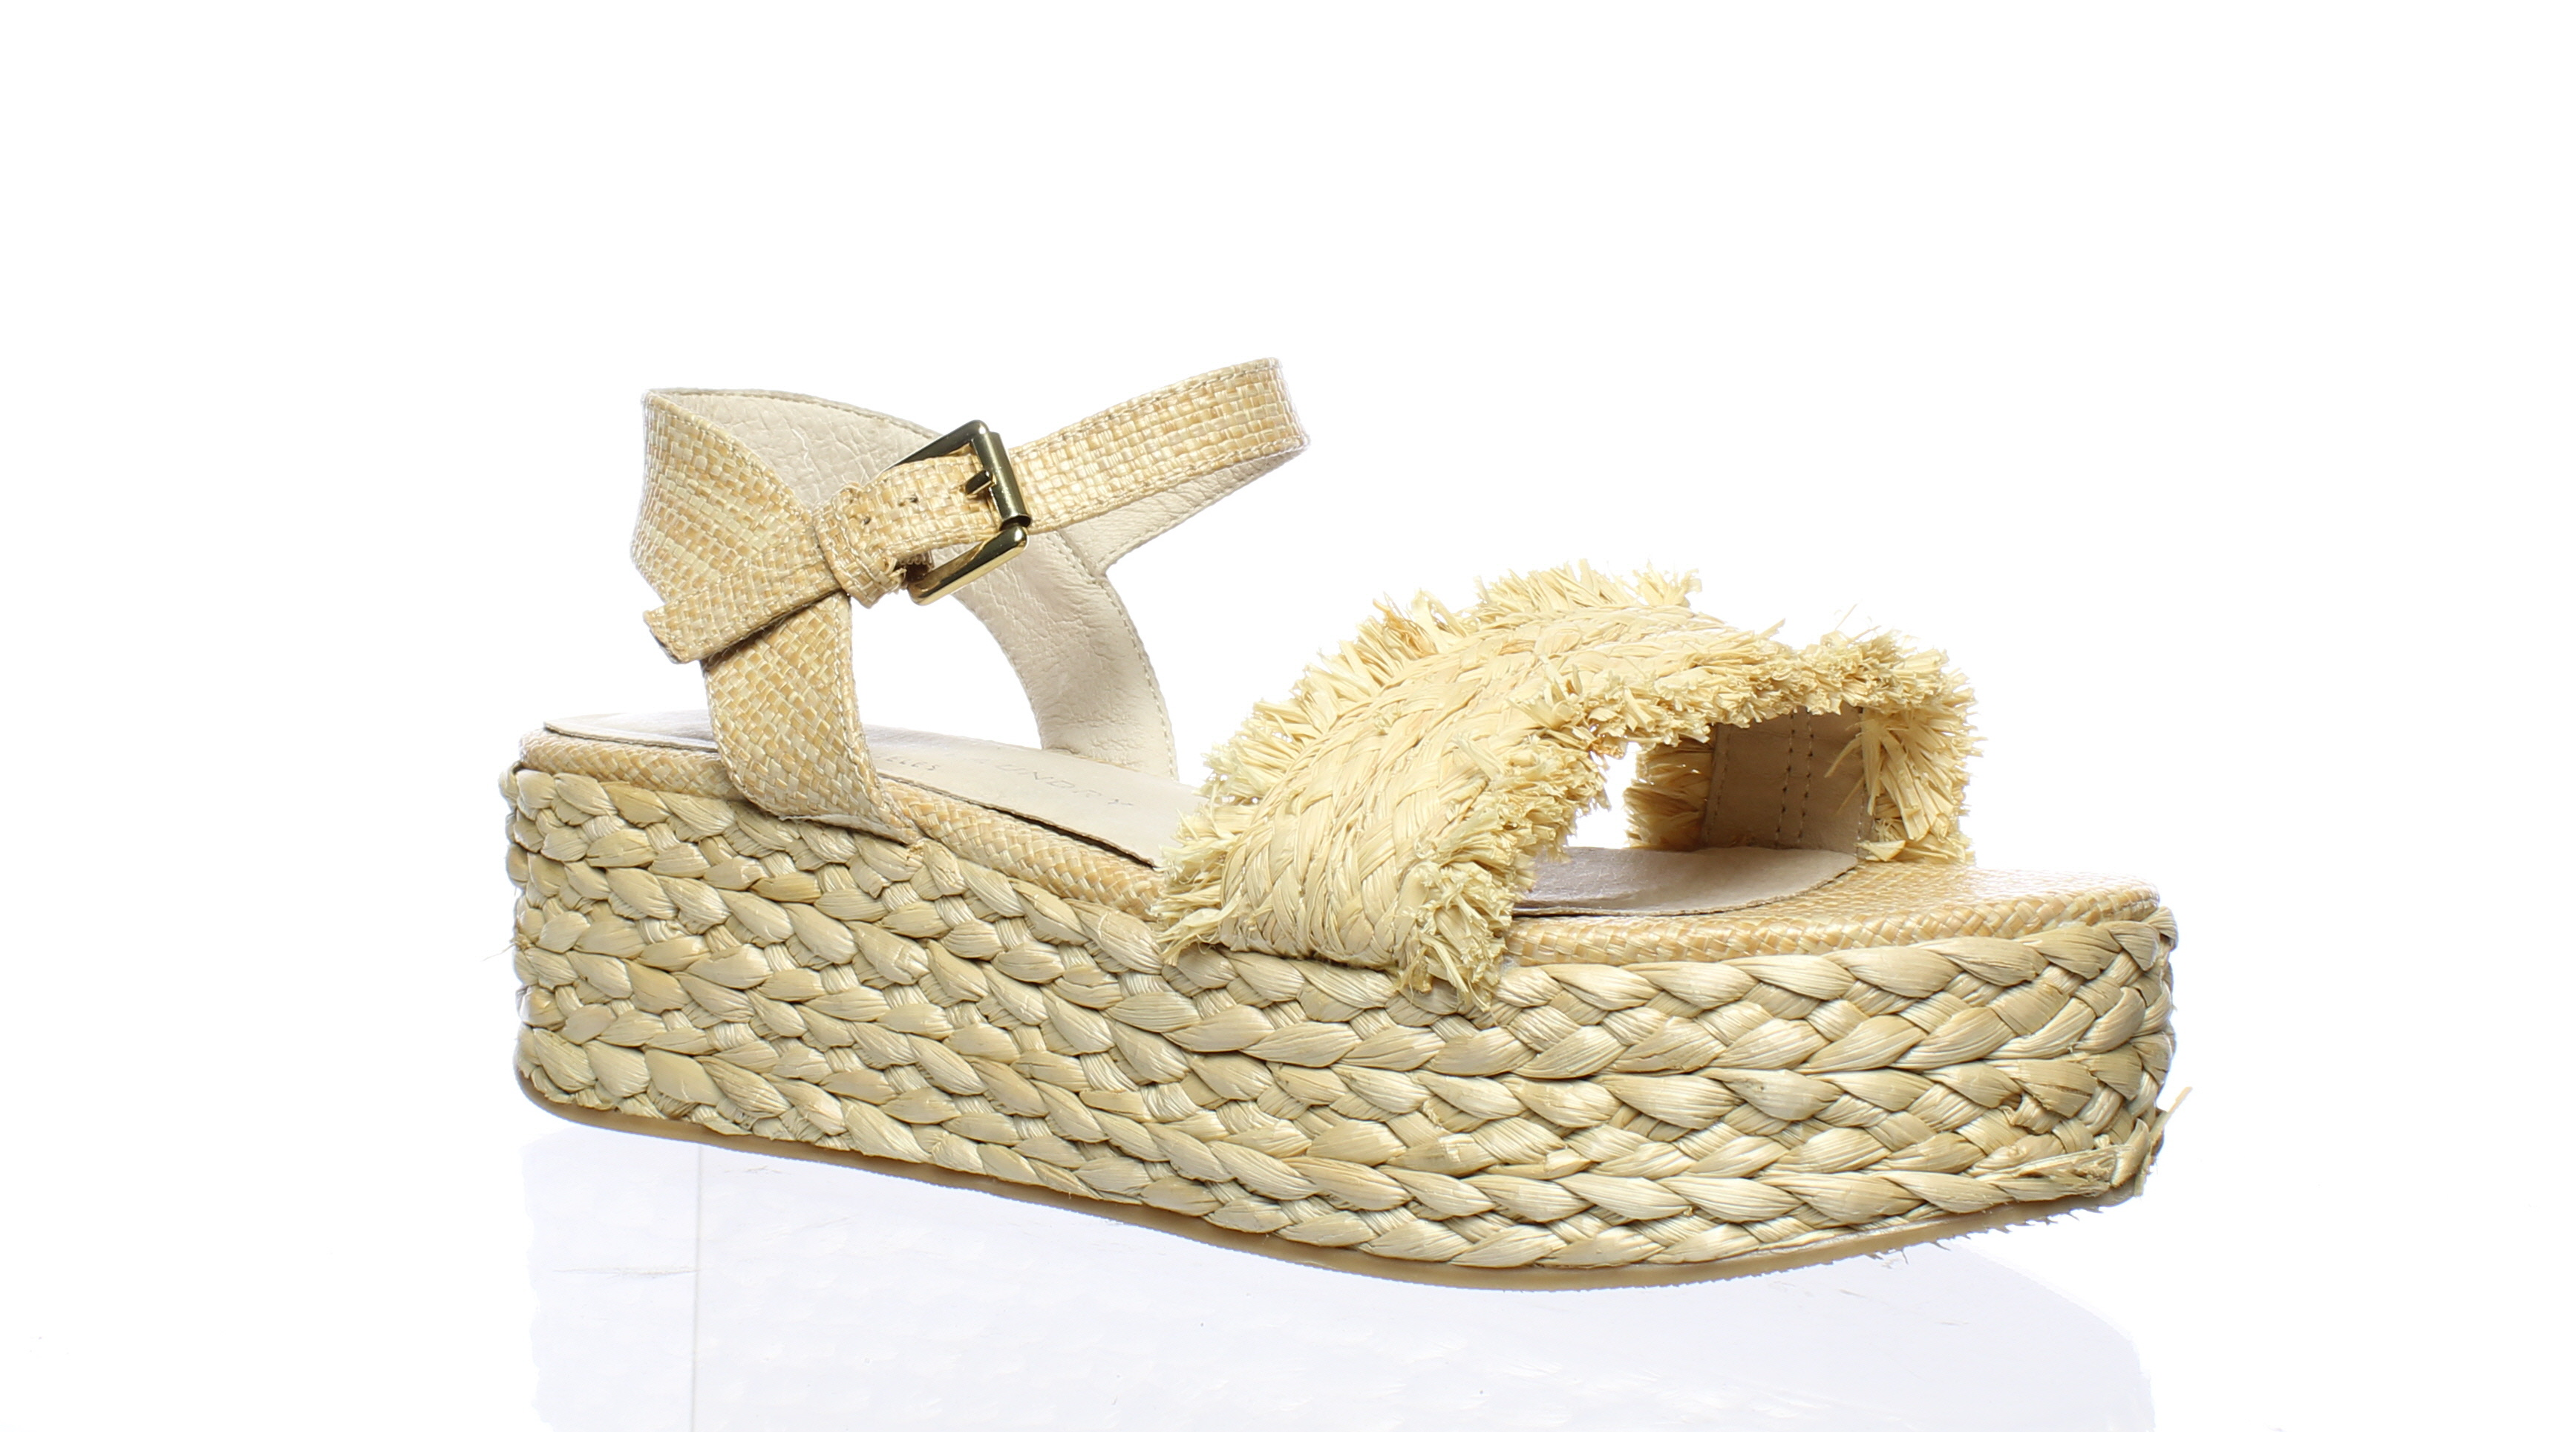 17647124df4 Chinese Laundry Womens Ziba Straw Natural Straw Espadrilles Size 8.5 ...